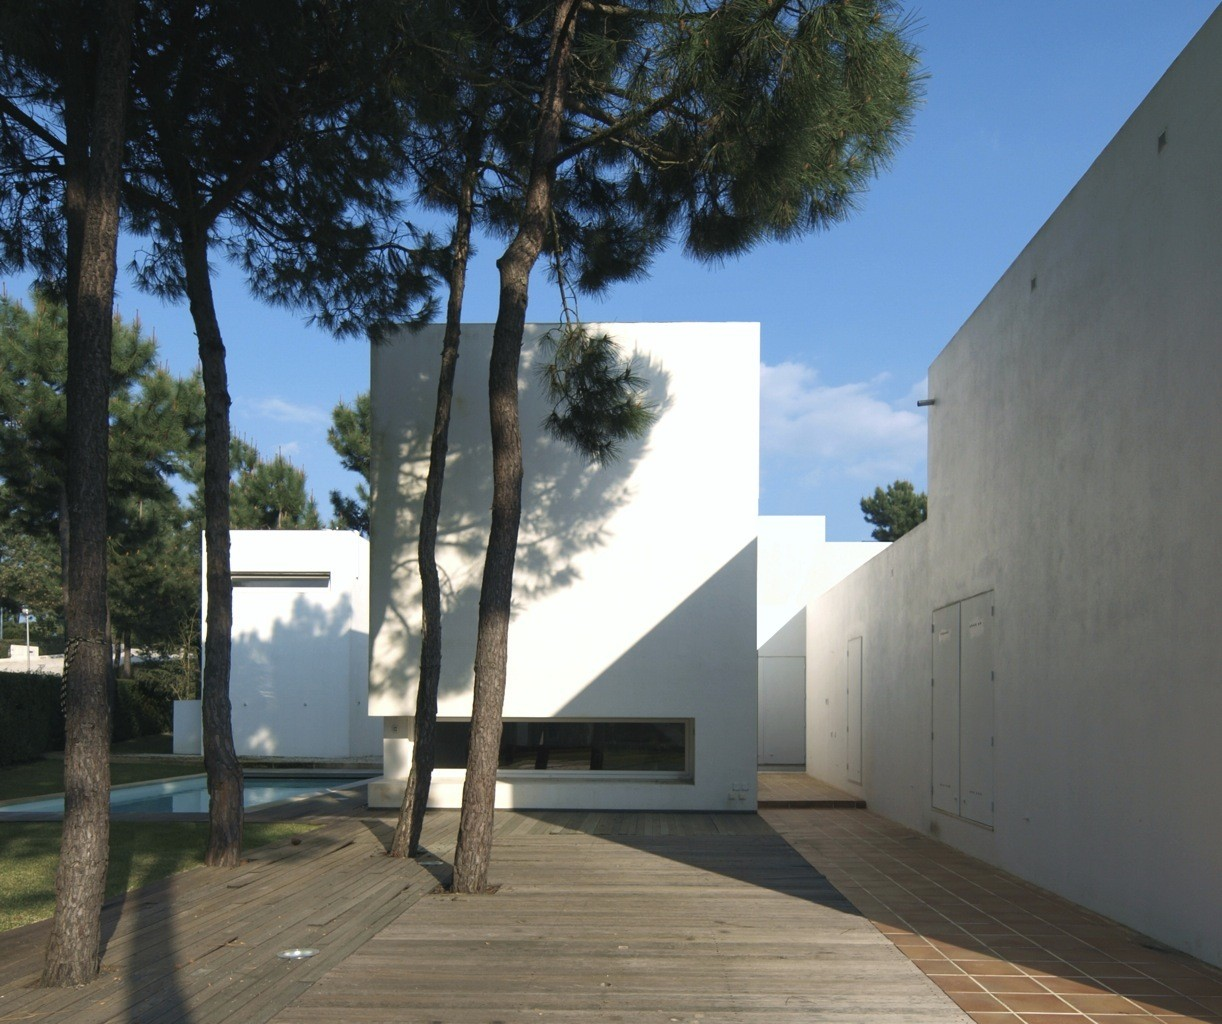 House in Tróia / Jorge Mealha, Courtesy of Jorge Mealha